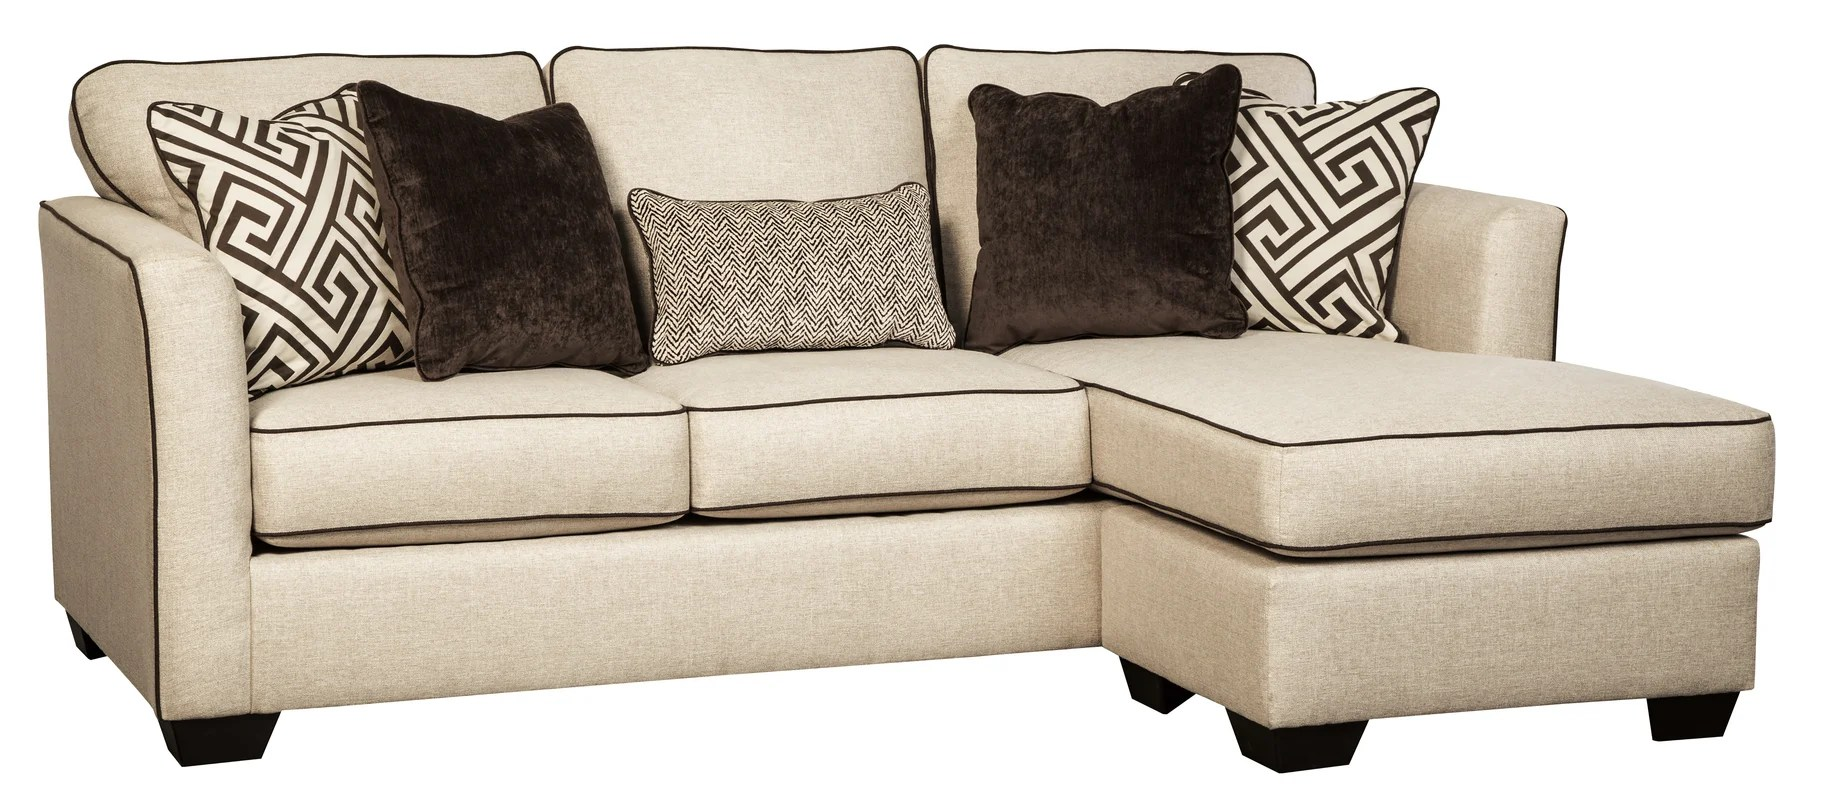 saucer chairs sam s club leather theater carlinworth sofa chaise and reviews birch lane